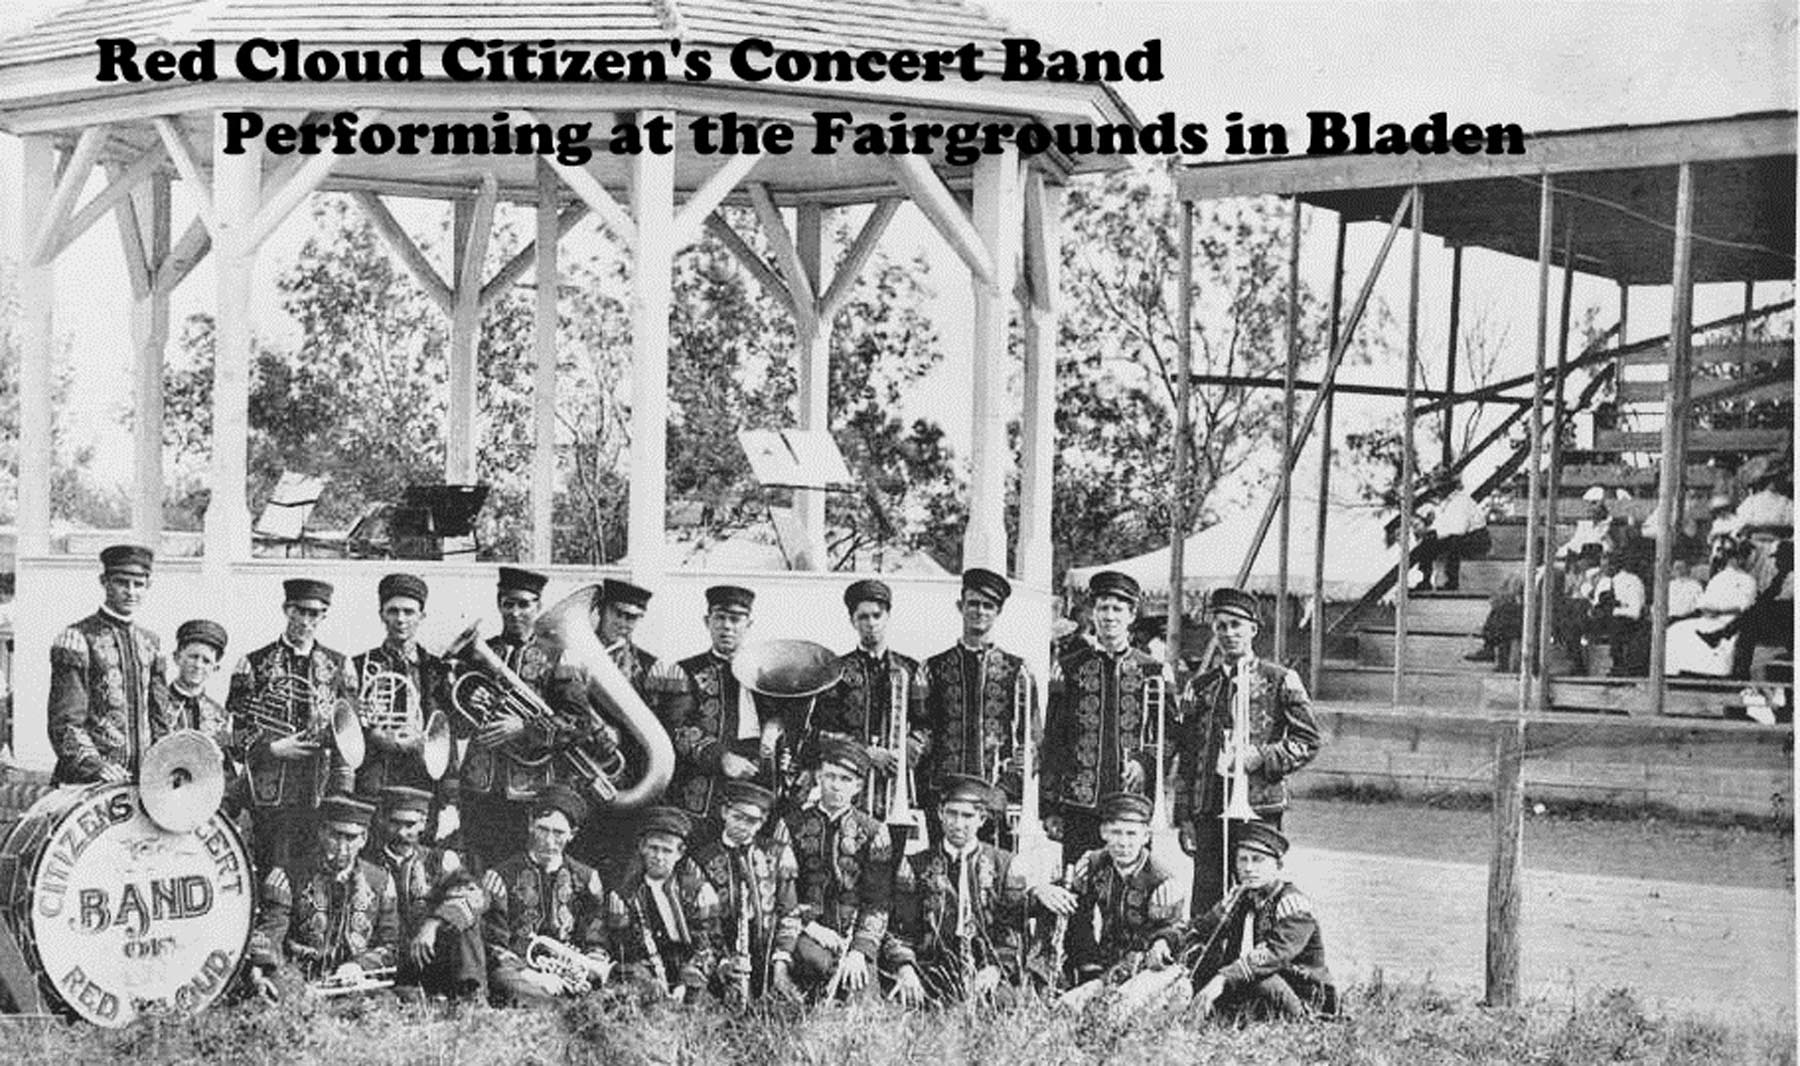 Citizens_Concert_Band_of_Red_Cloud_Nebr_At_the_Bladen_Nebraska_Fair-label